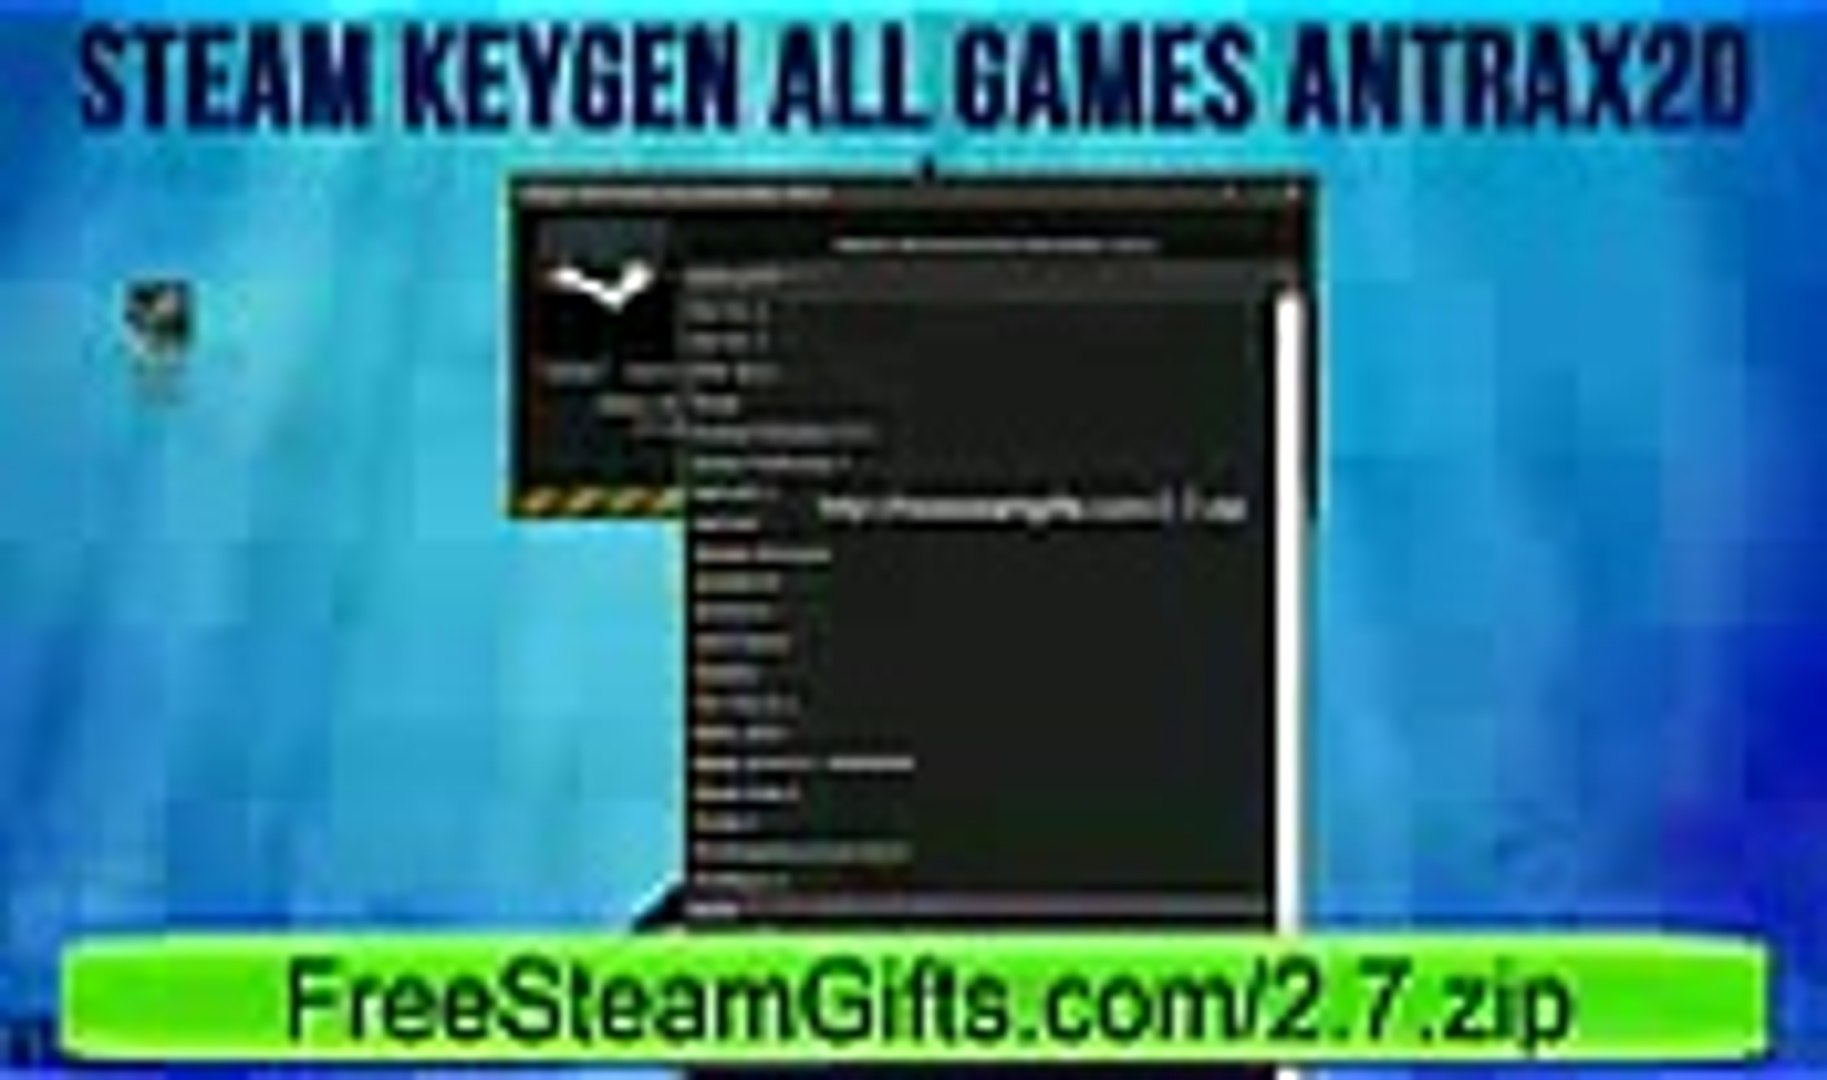 STEAM KEY GENERATOR 2014 ALL GAMES 2014 DIRECT DOWNLOAD FREE HD January 2014 - YouTube_3